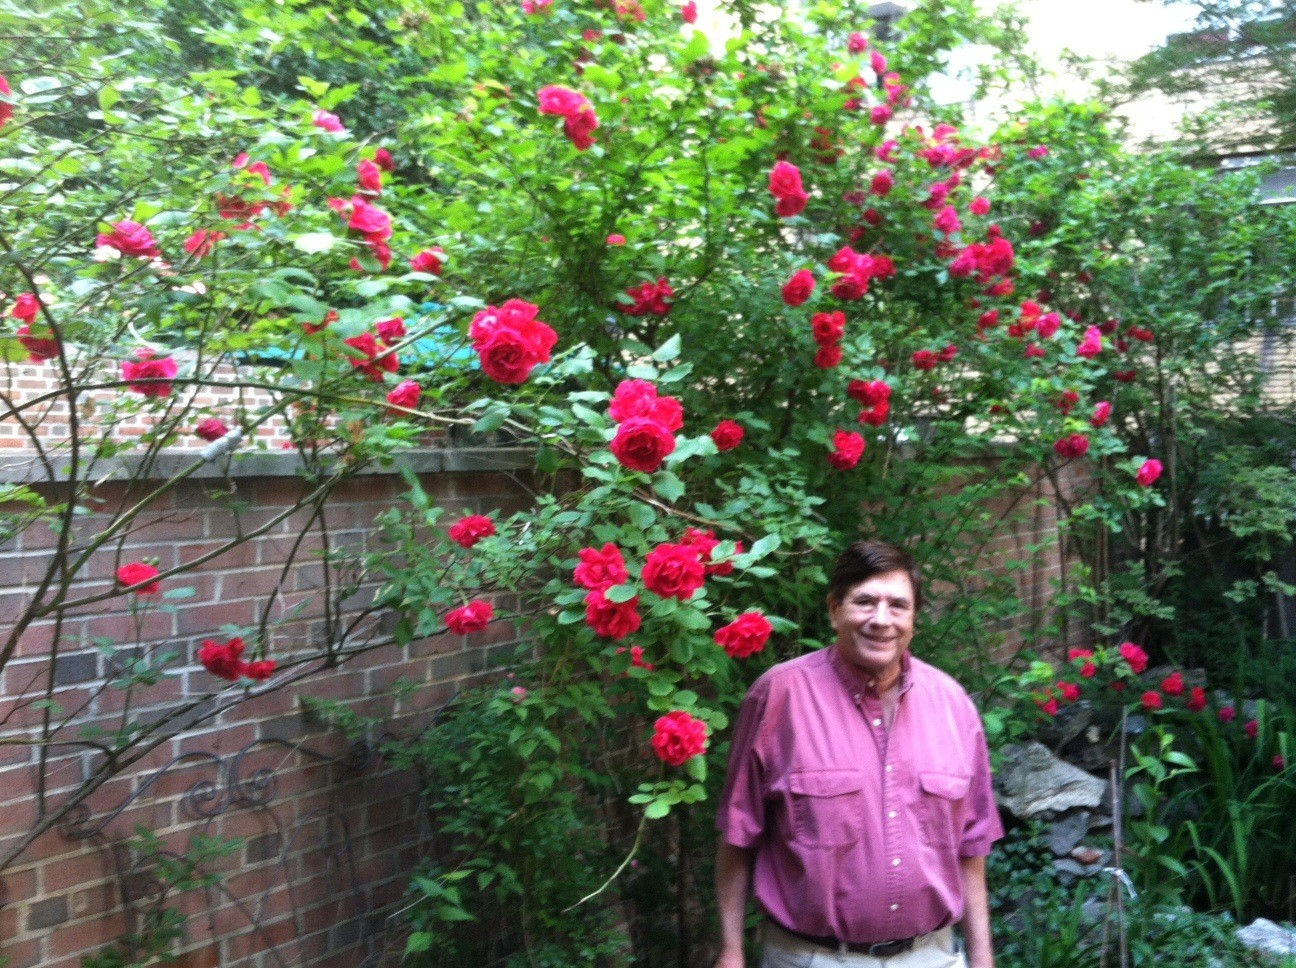 John's lovely red roses in our backyard! 6-14